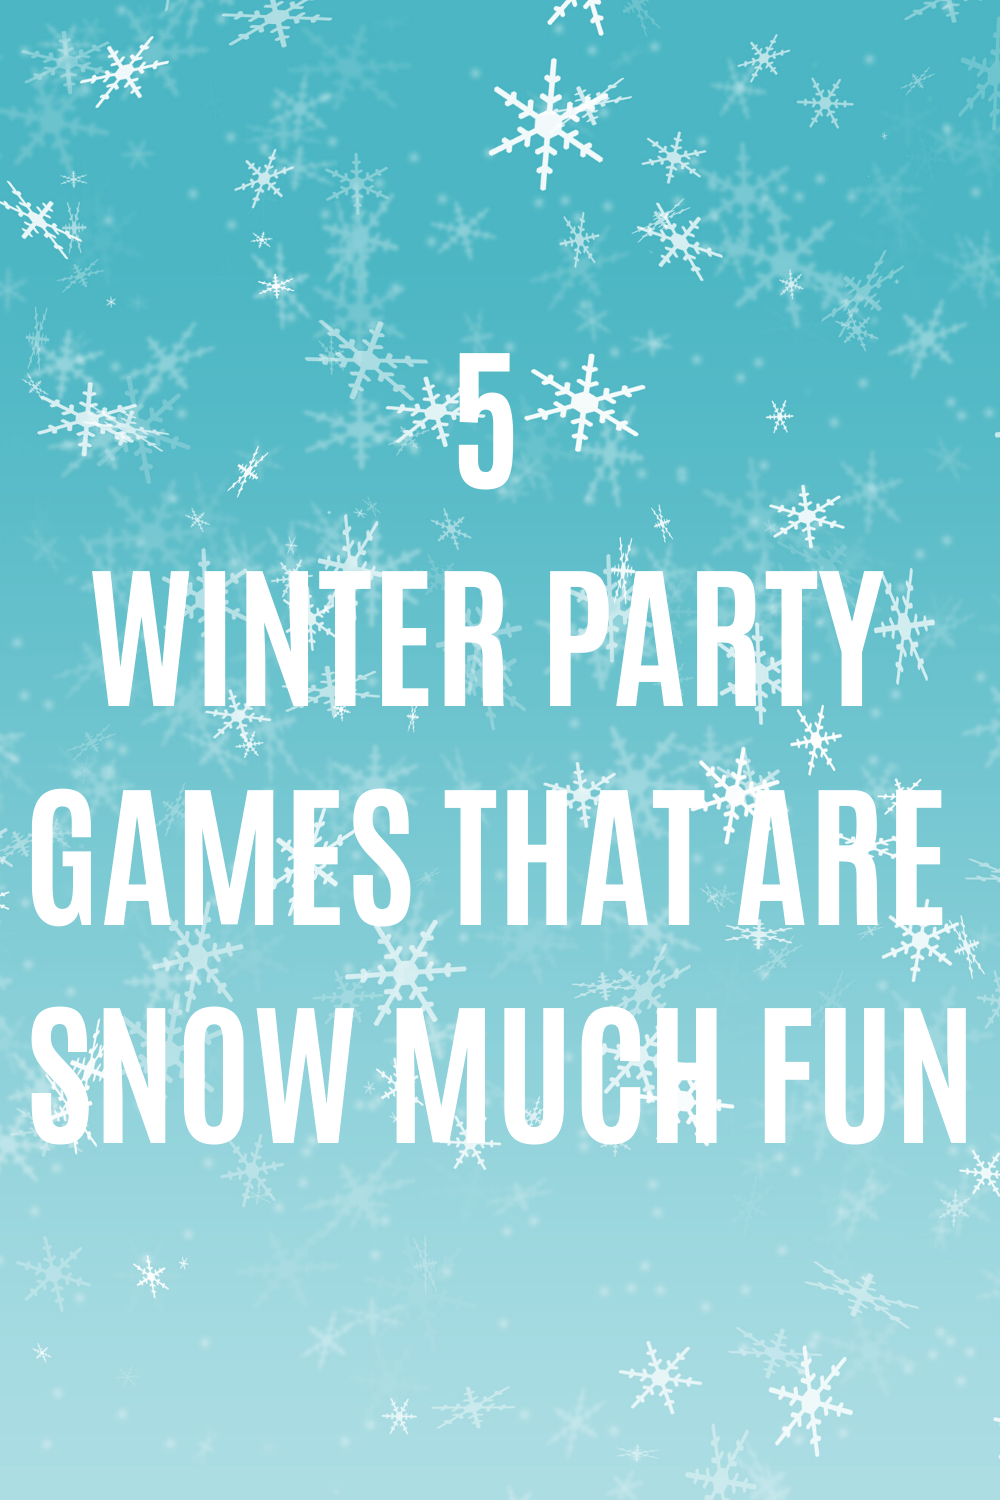 Winter Party Games